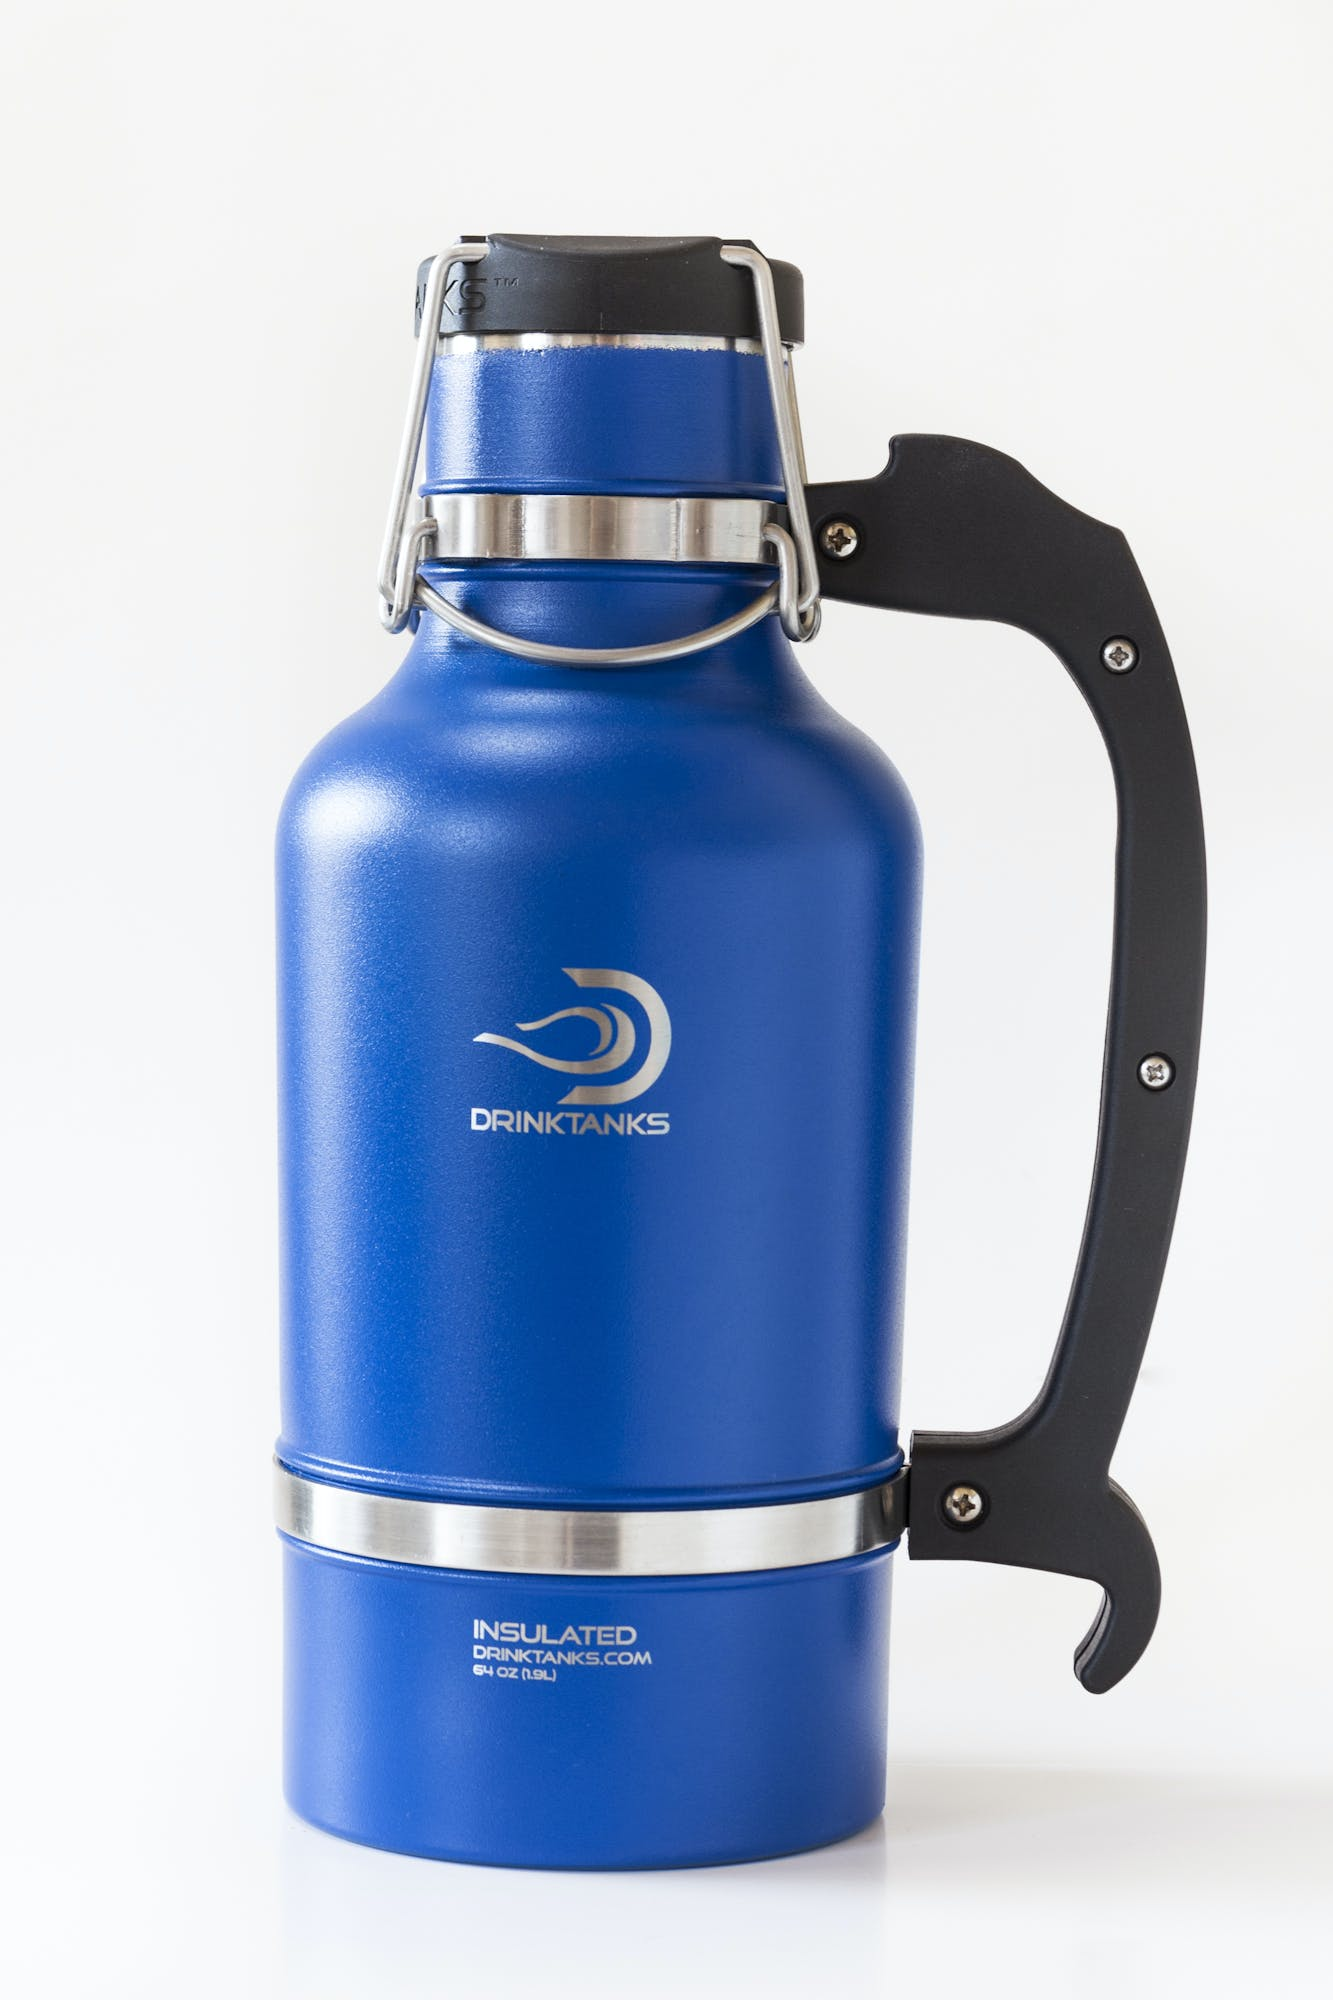 Drink Tanks Growler - Enjoy beer exactly as it was intended. Cold. Fresh. Carbonated. - 64oz Capacity (Blue) Growler sold by Drink Tanks